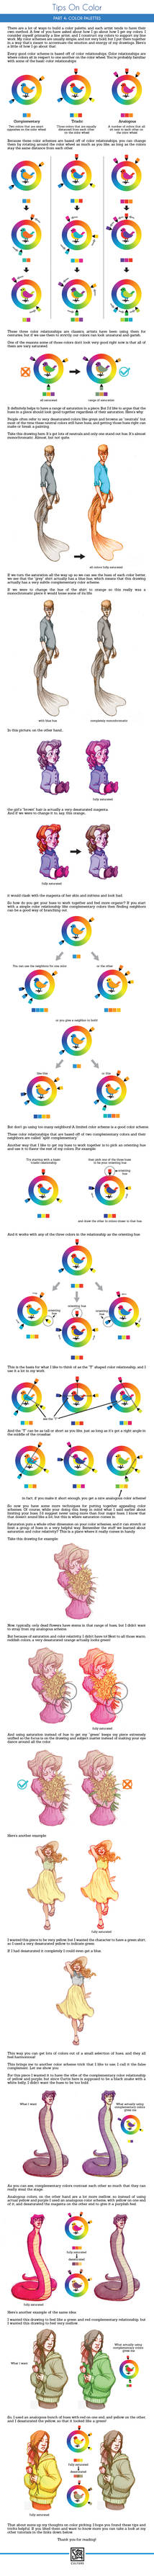 Color Tutorial Part 4: Color Picking and Palettes